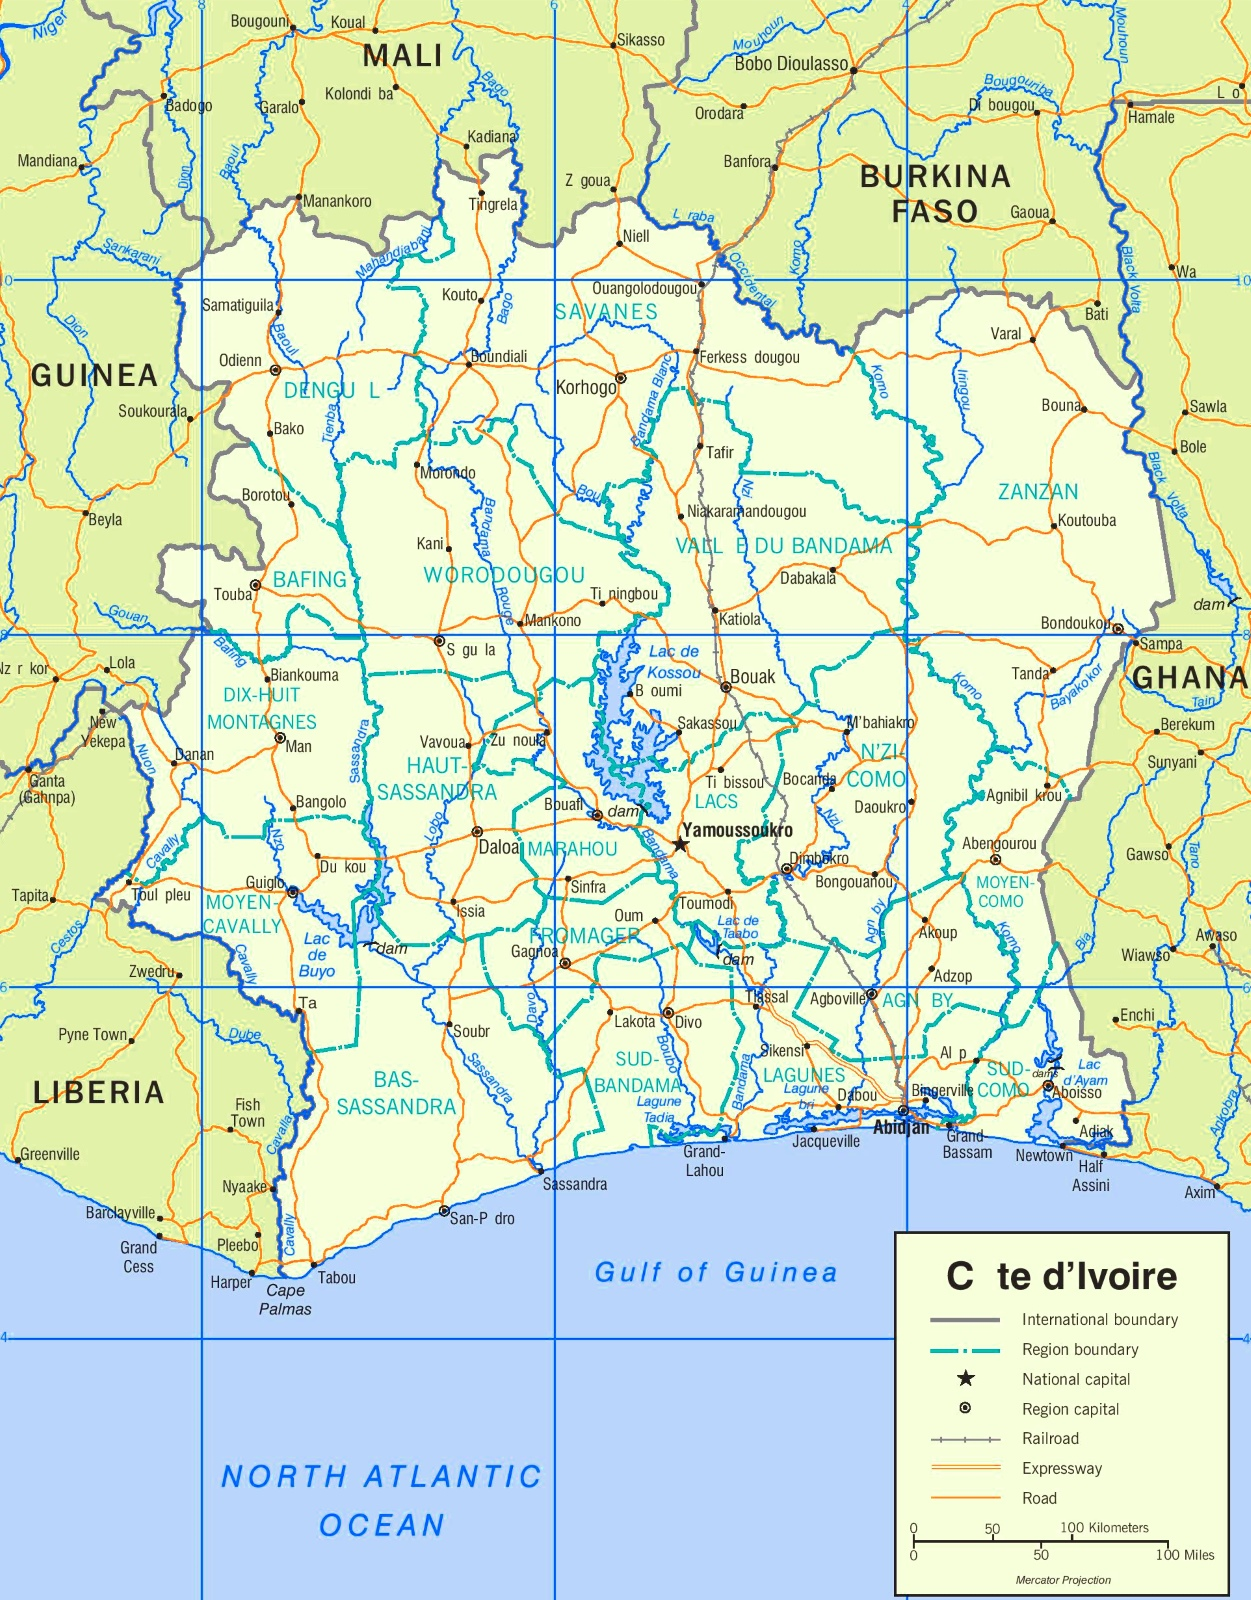 Cte dIvoire road map